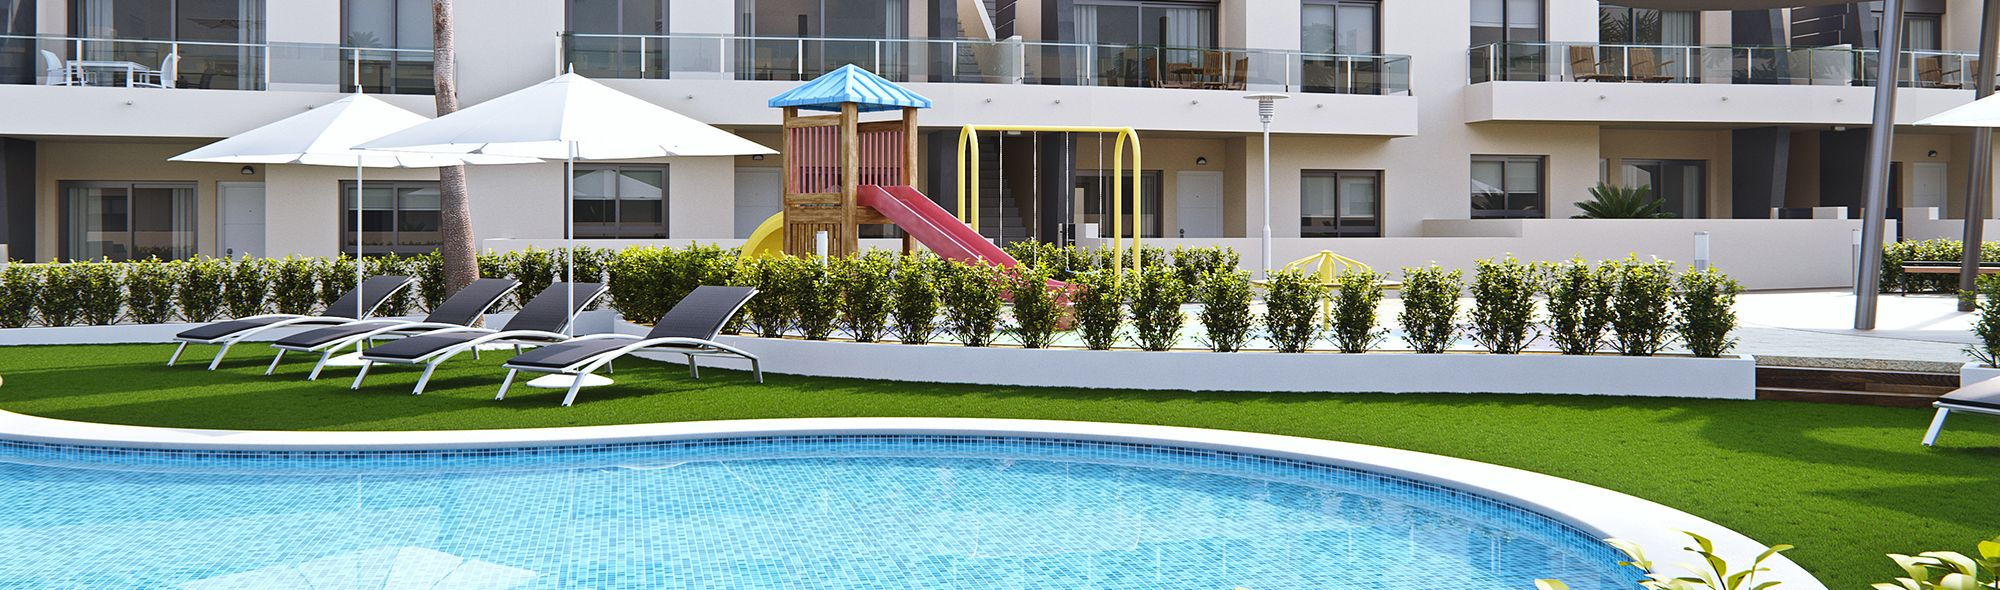 New Build Apartments in Different Areas of Costa Blanca, Spain